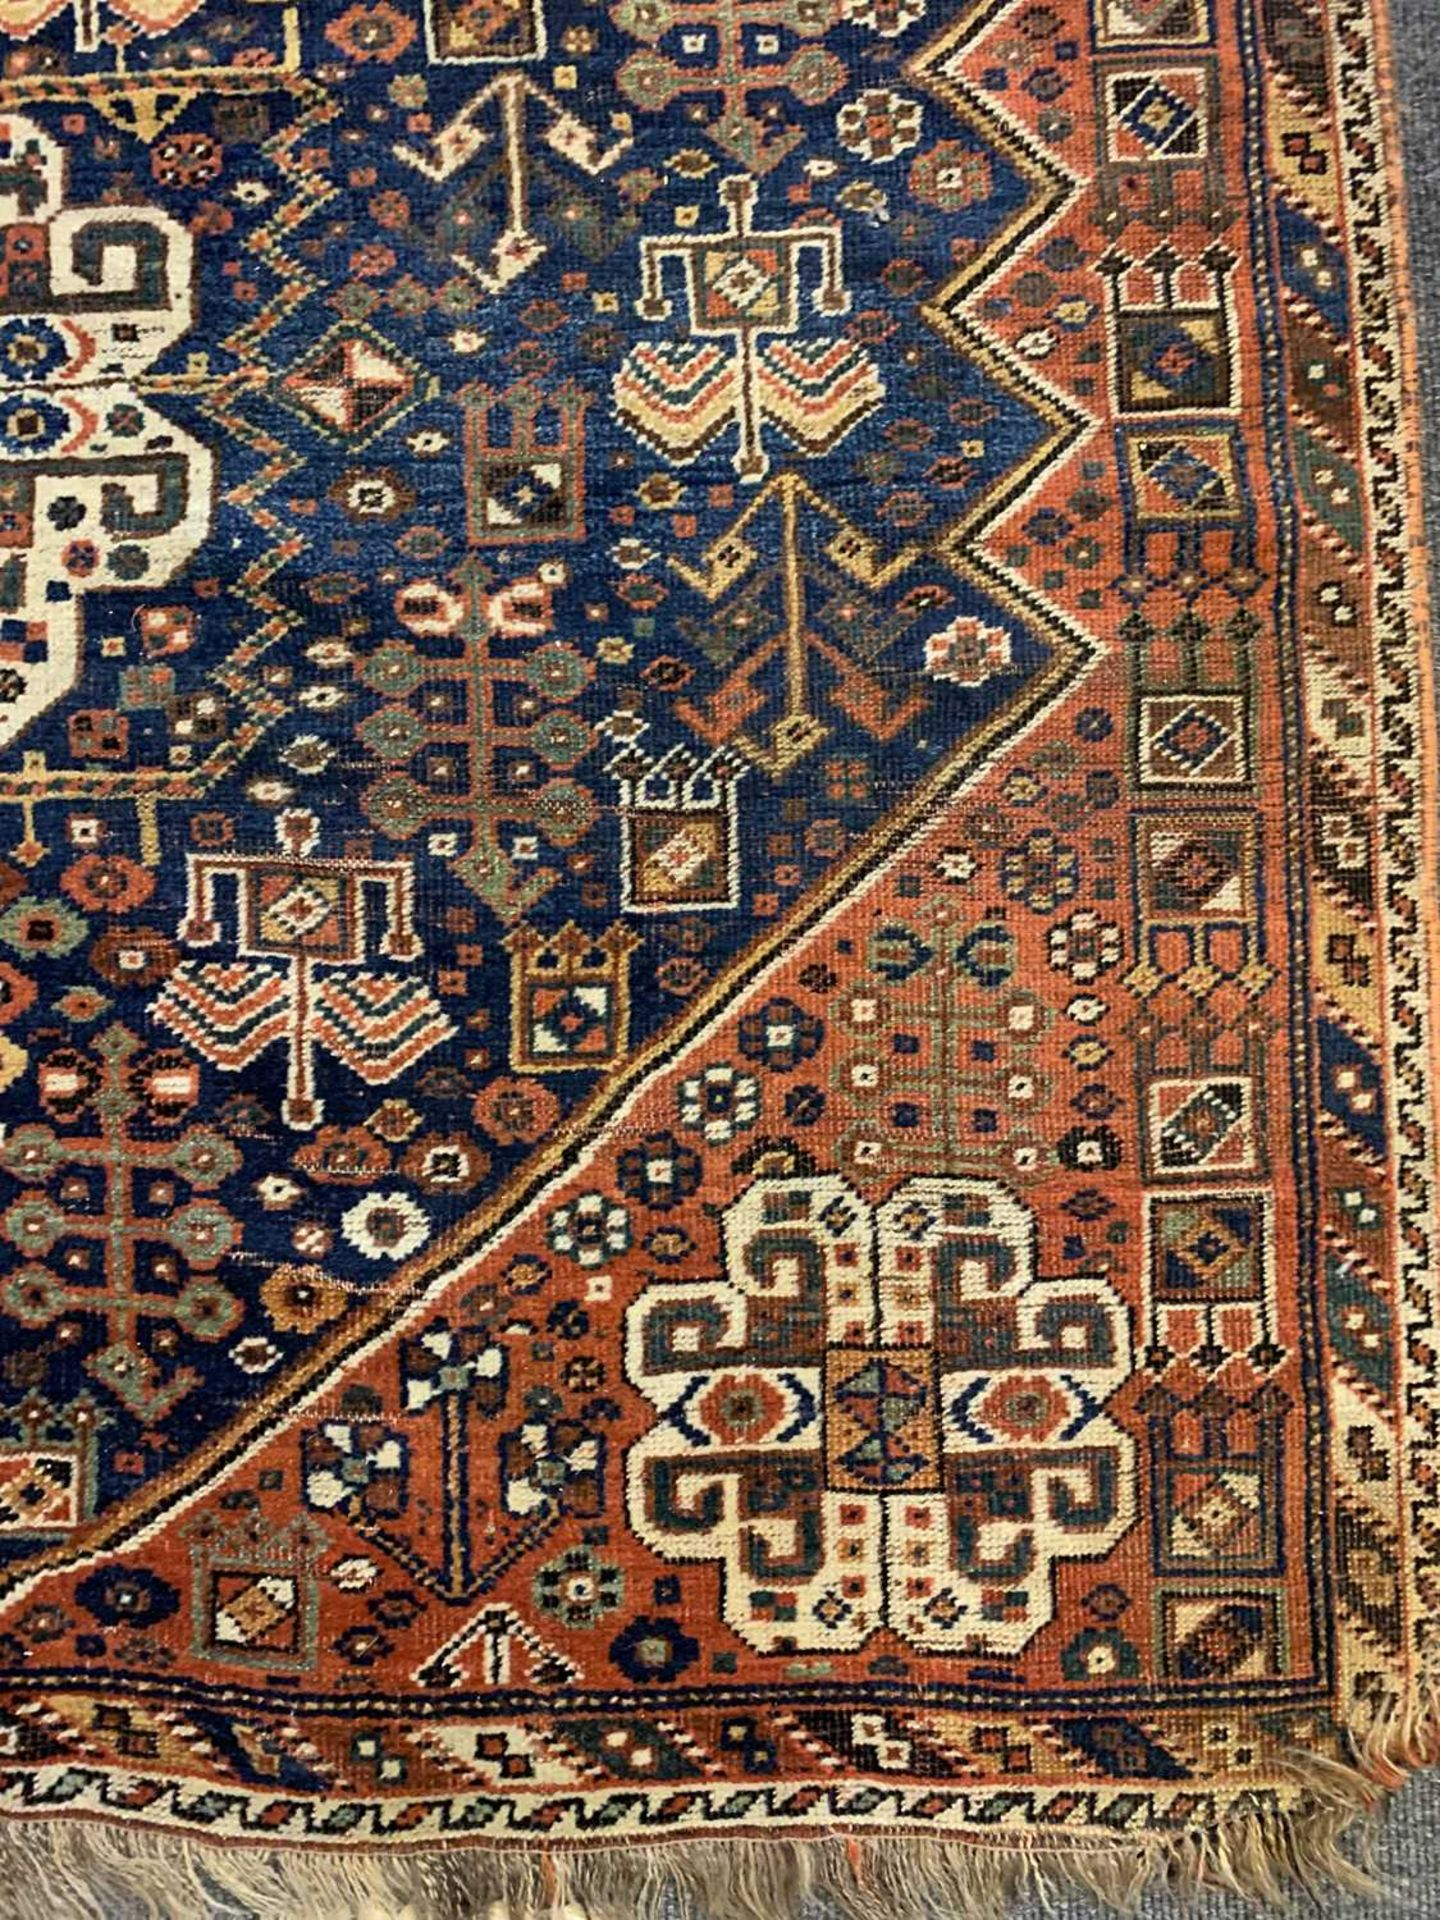 A Persian carpet, - Image 14 of 14